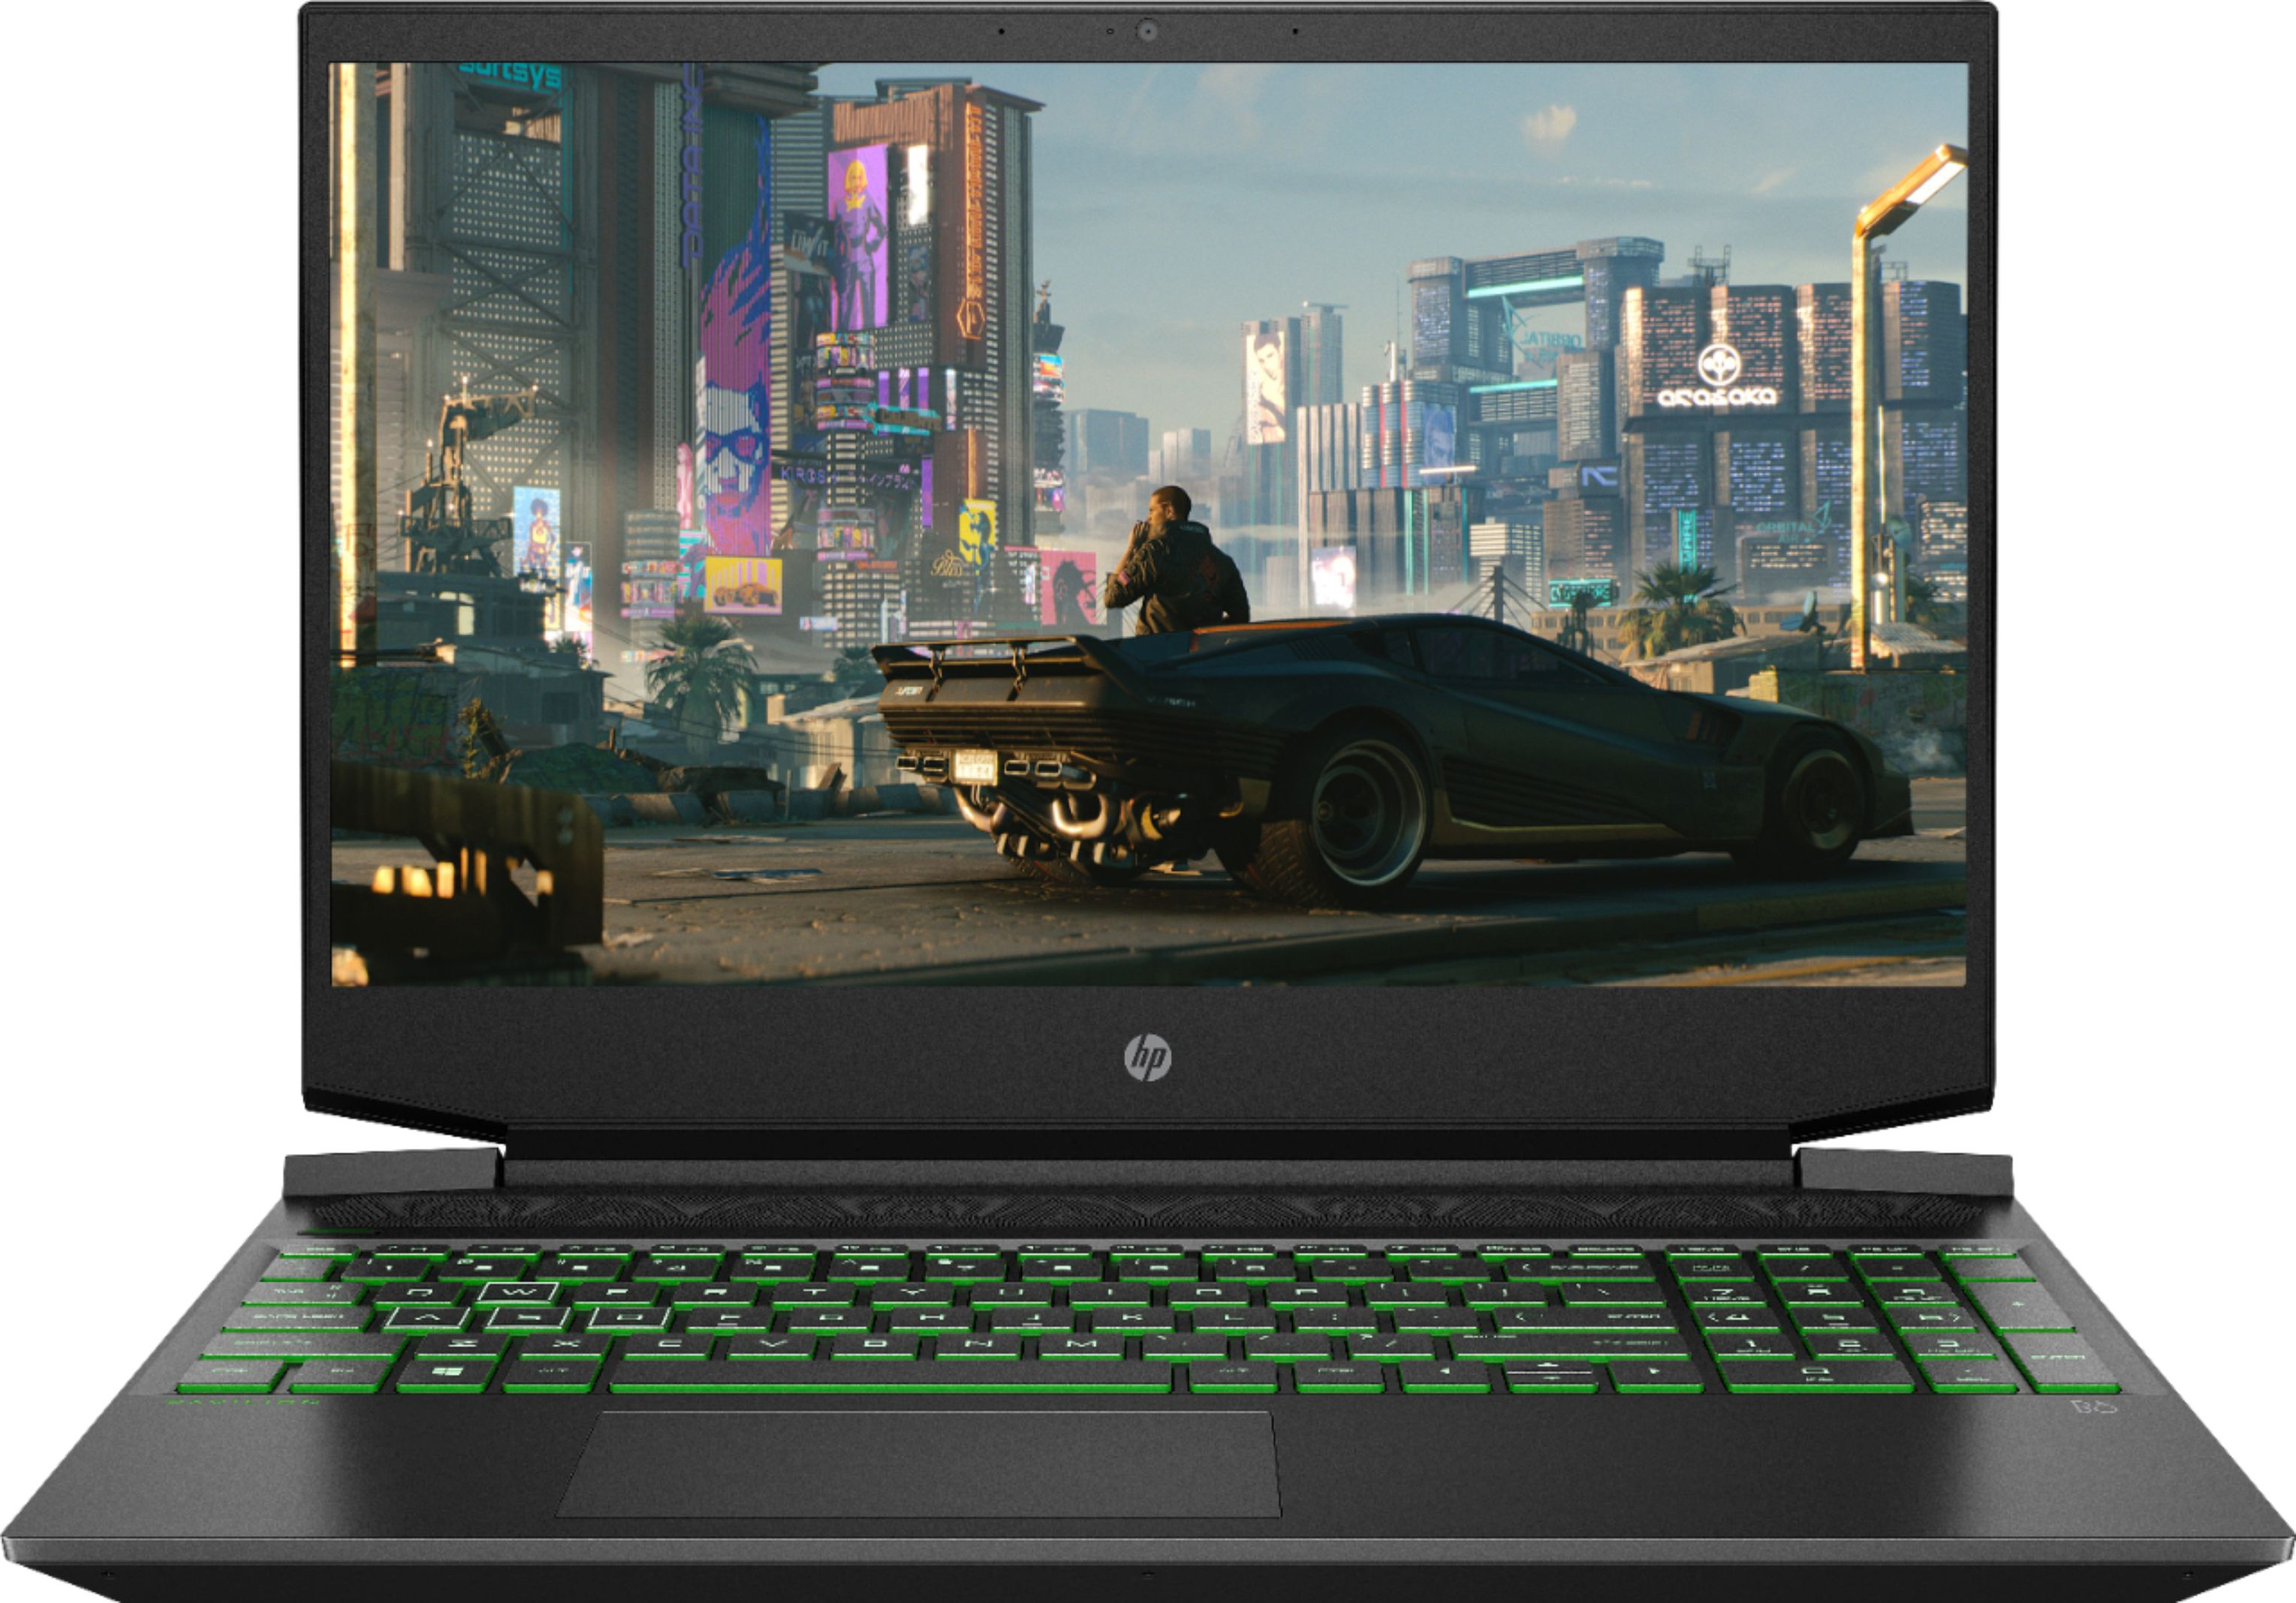 Get a GeForce GTX 1650 laptop for just $450 in this HP Pavilion Gaming 15  sale - NotebookCheck.net News